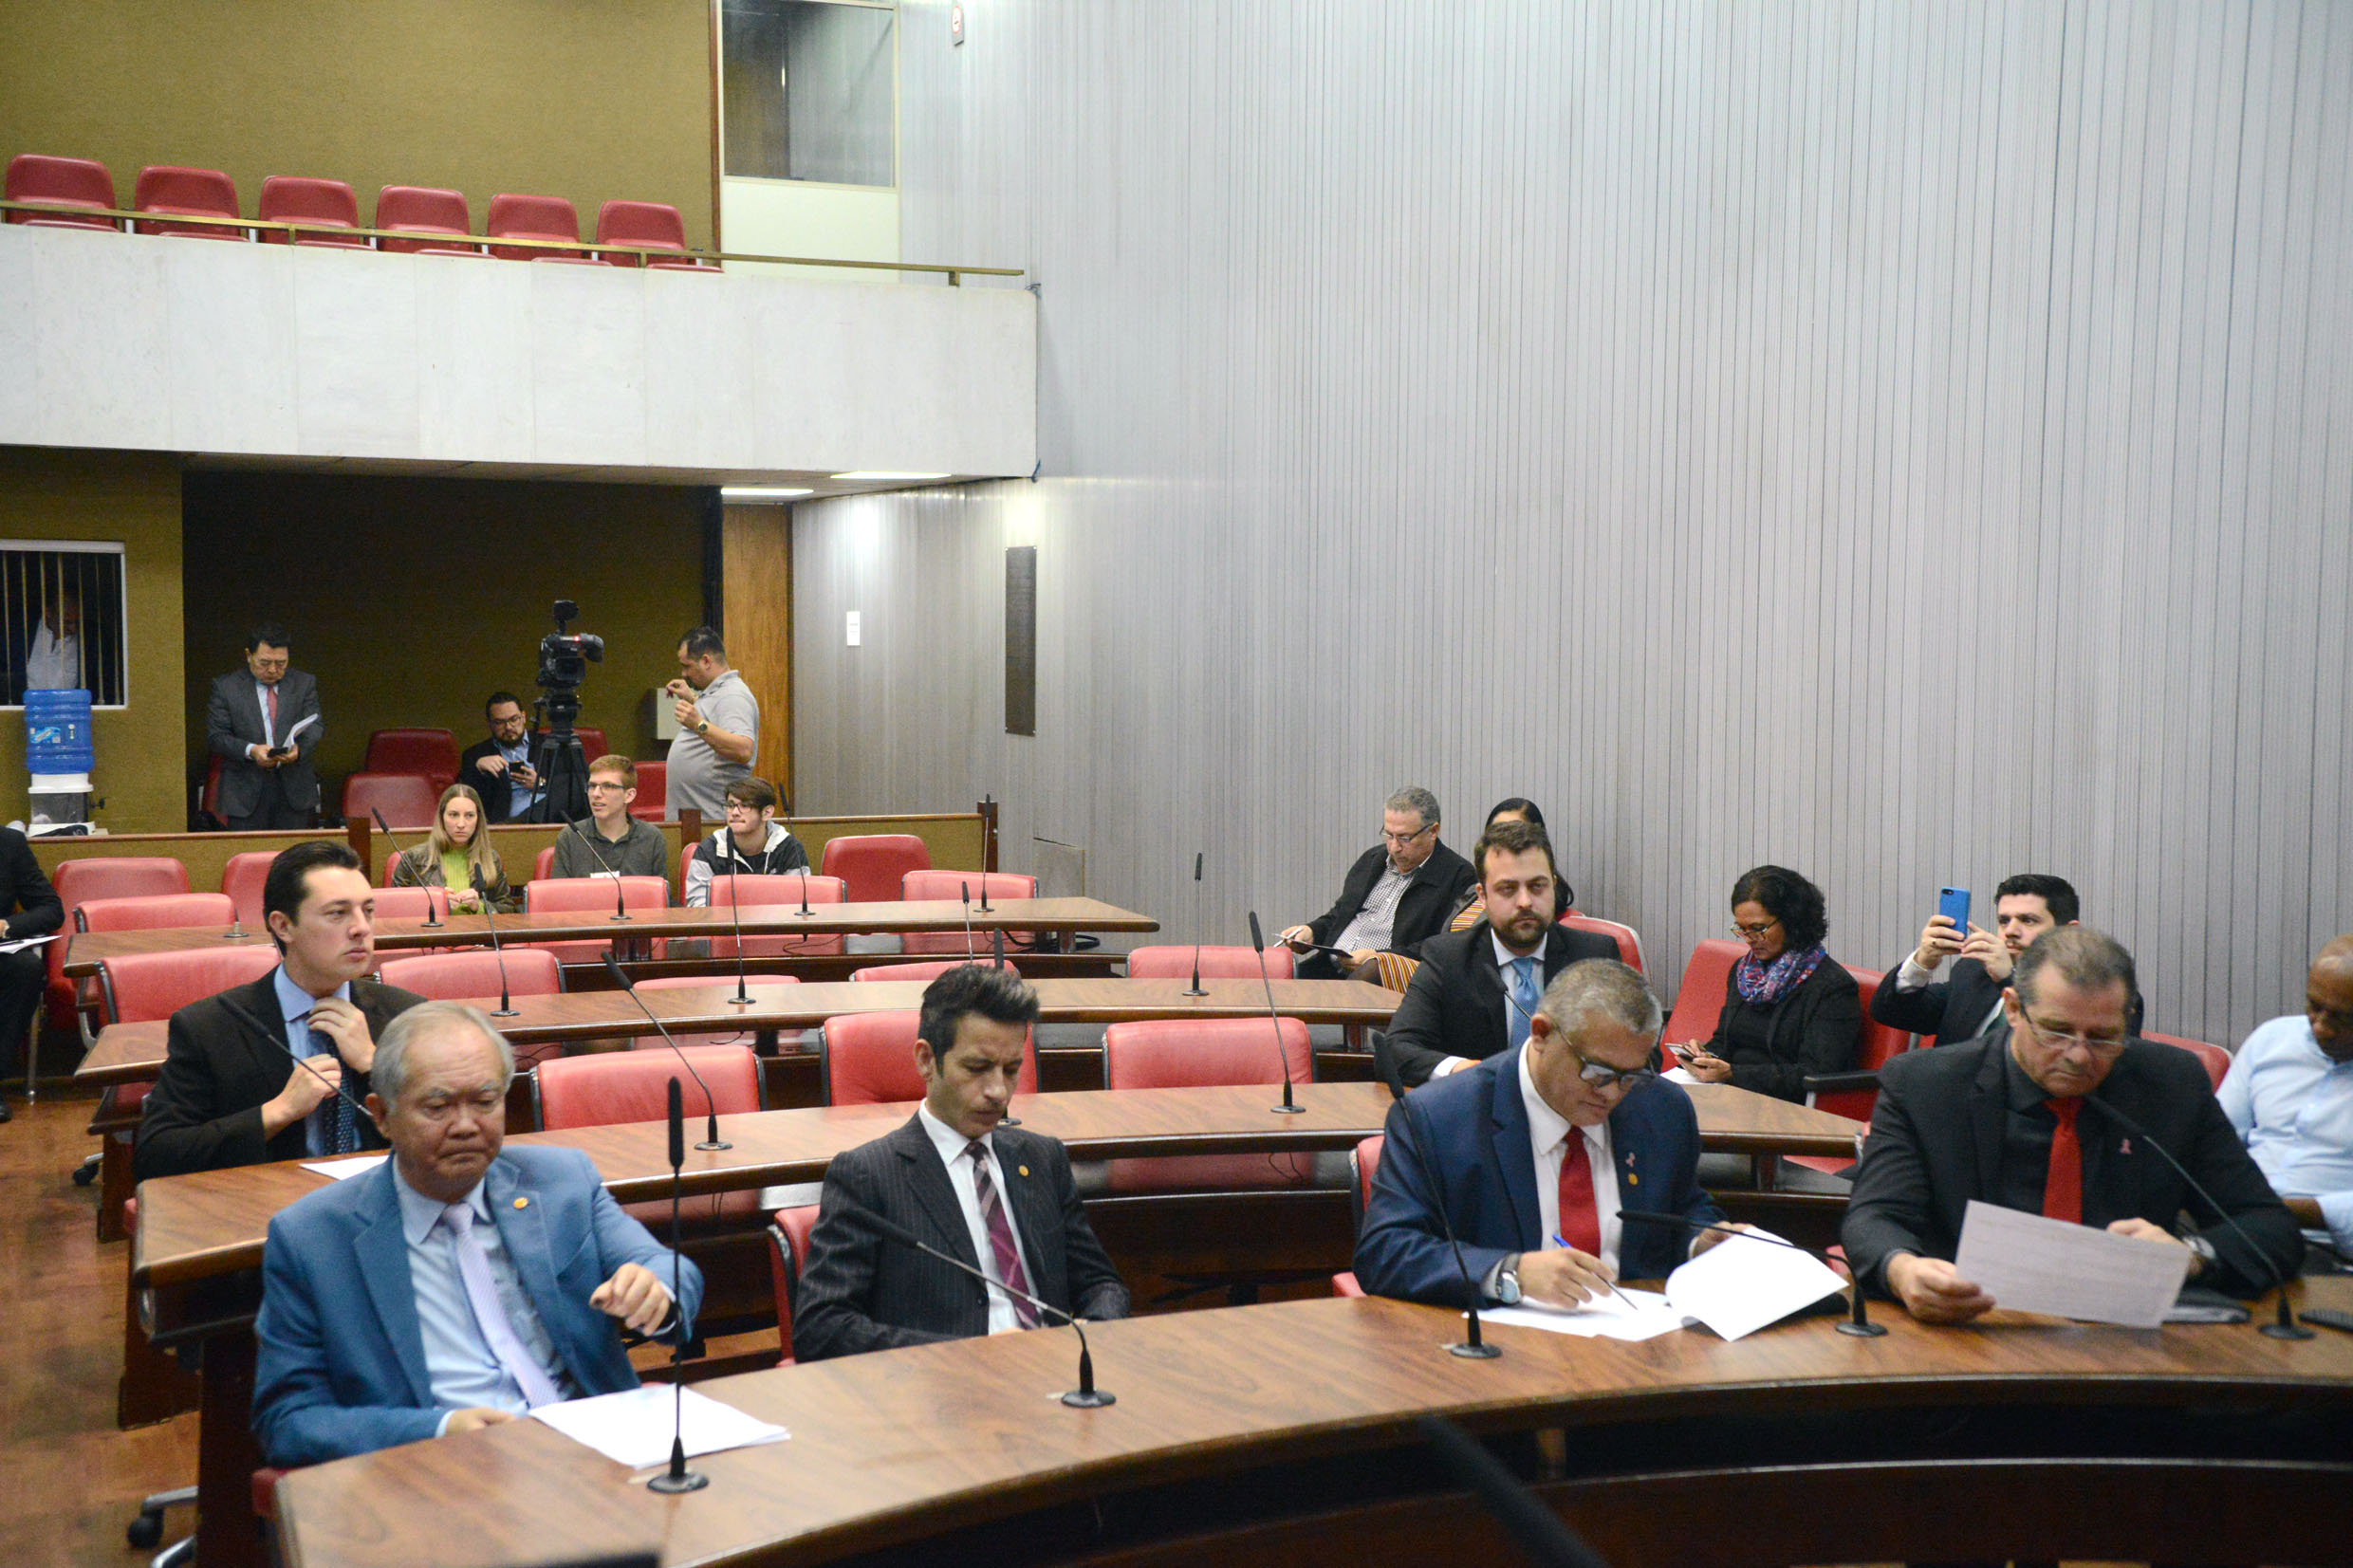 Parlamentares na comissão<a style='float:right' href='https://www3.al.sp.gov.br/repositorio/noticia/N-10-2019/fg241505.jpg' target=_blank><img src='/_img/material-file-download-white.png' width='14px' alt='Clique para baixar a imagem'></a>